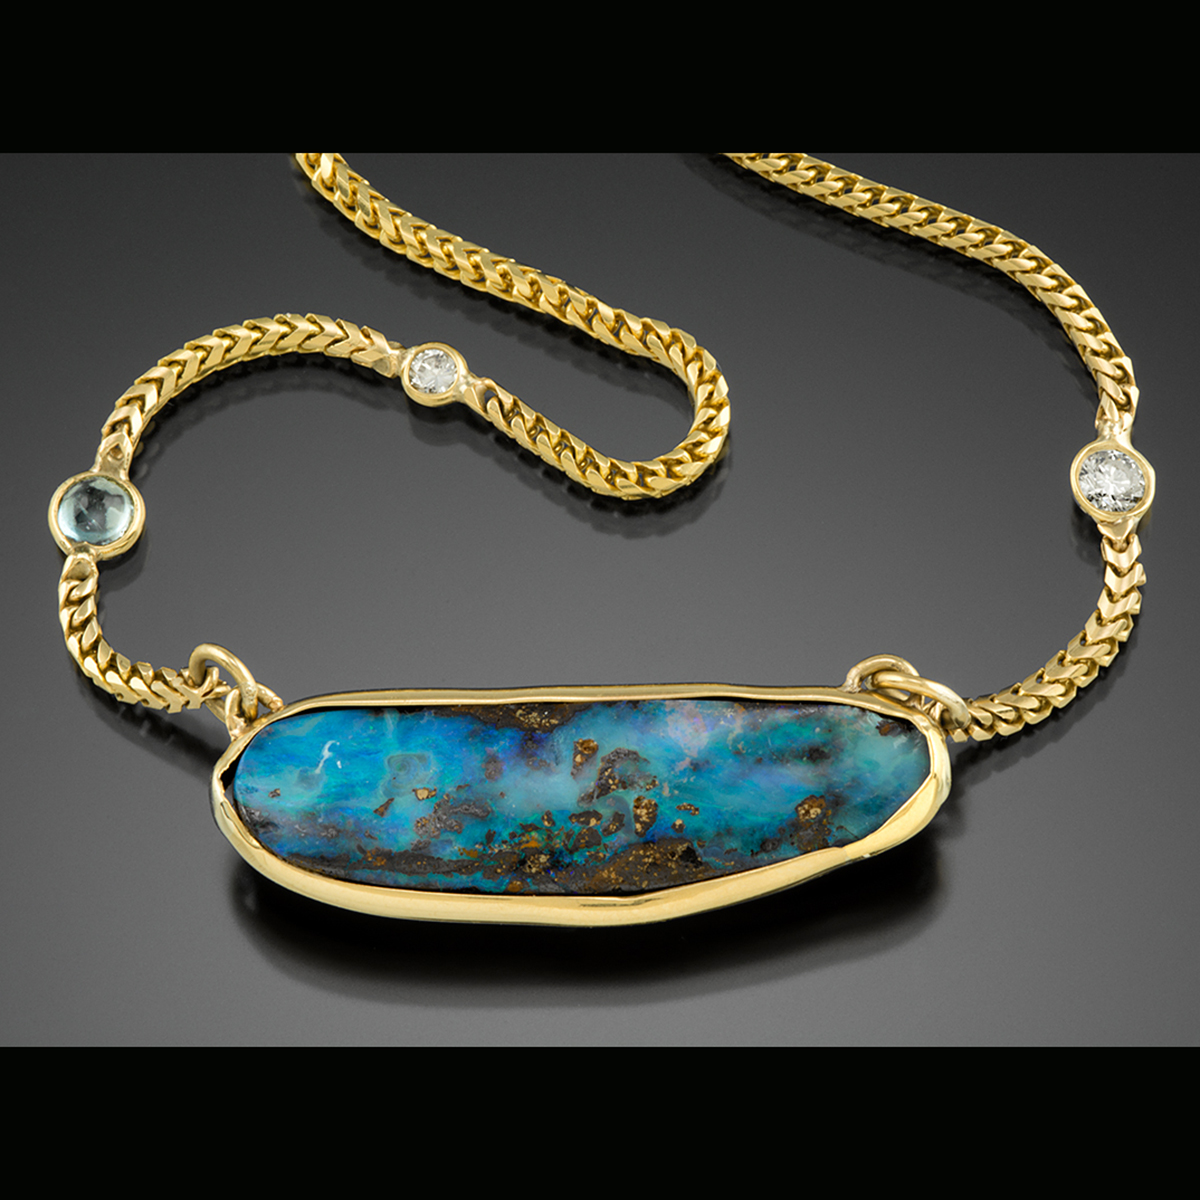 18K yellow gold necklace with Boulder Opal Diamonds and blue Topaz.